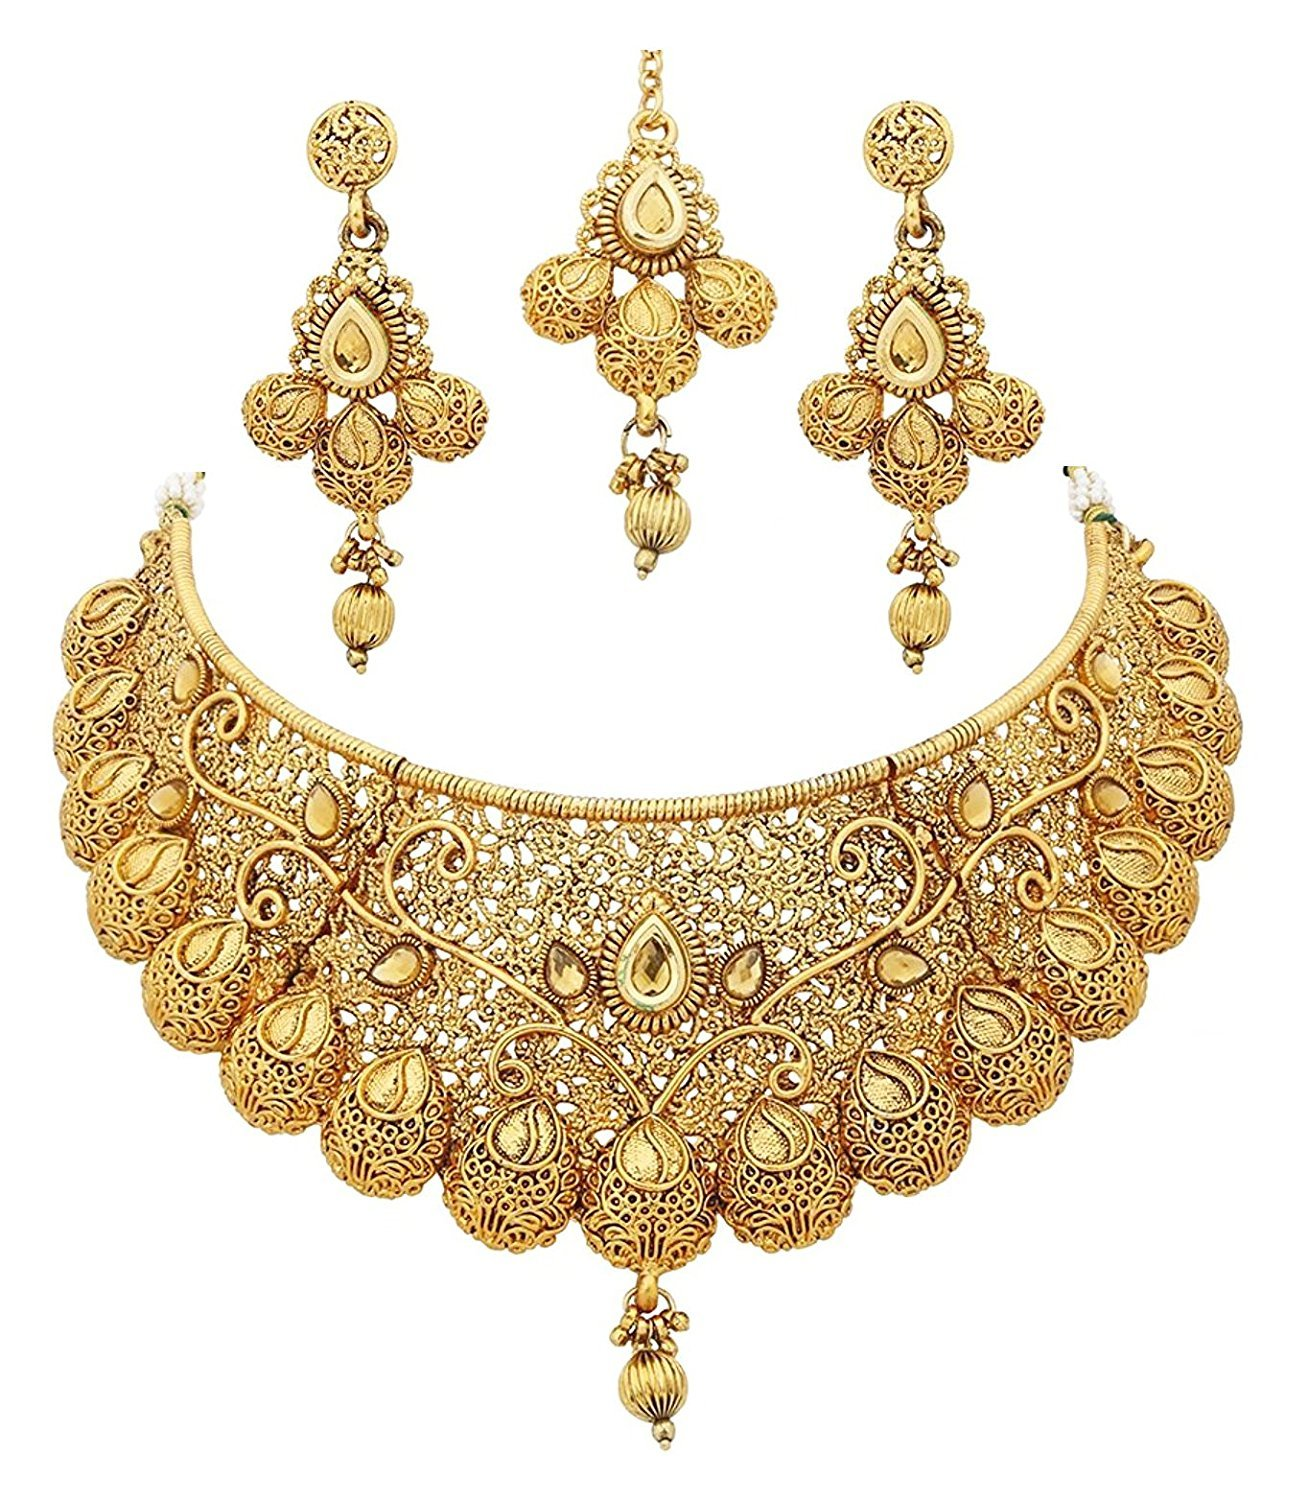 Crunchy Fashion Royal Bling Bollywood Traditional Indian Jewelry Temple Necklace With Earrings Set for Women